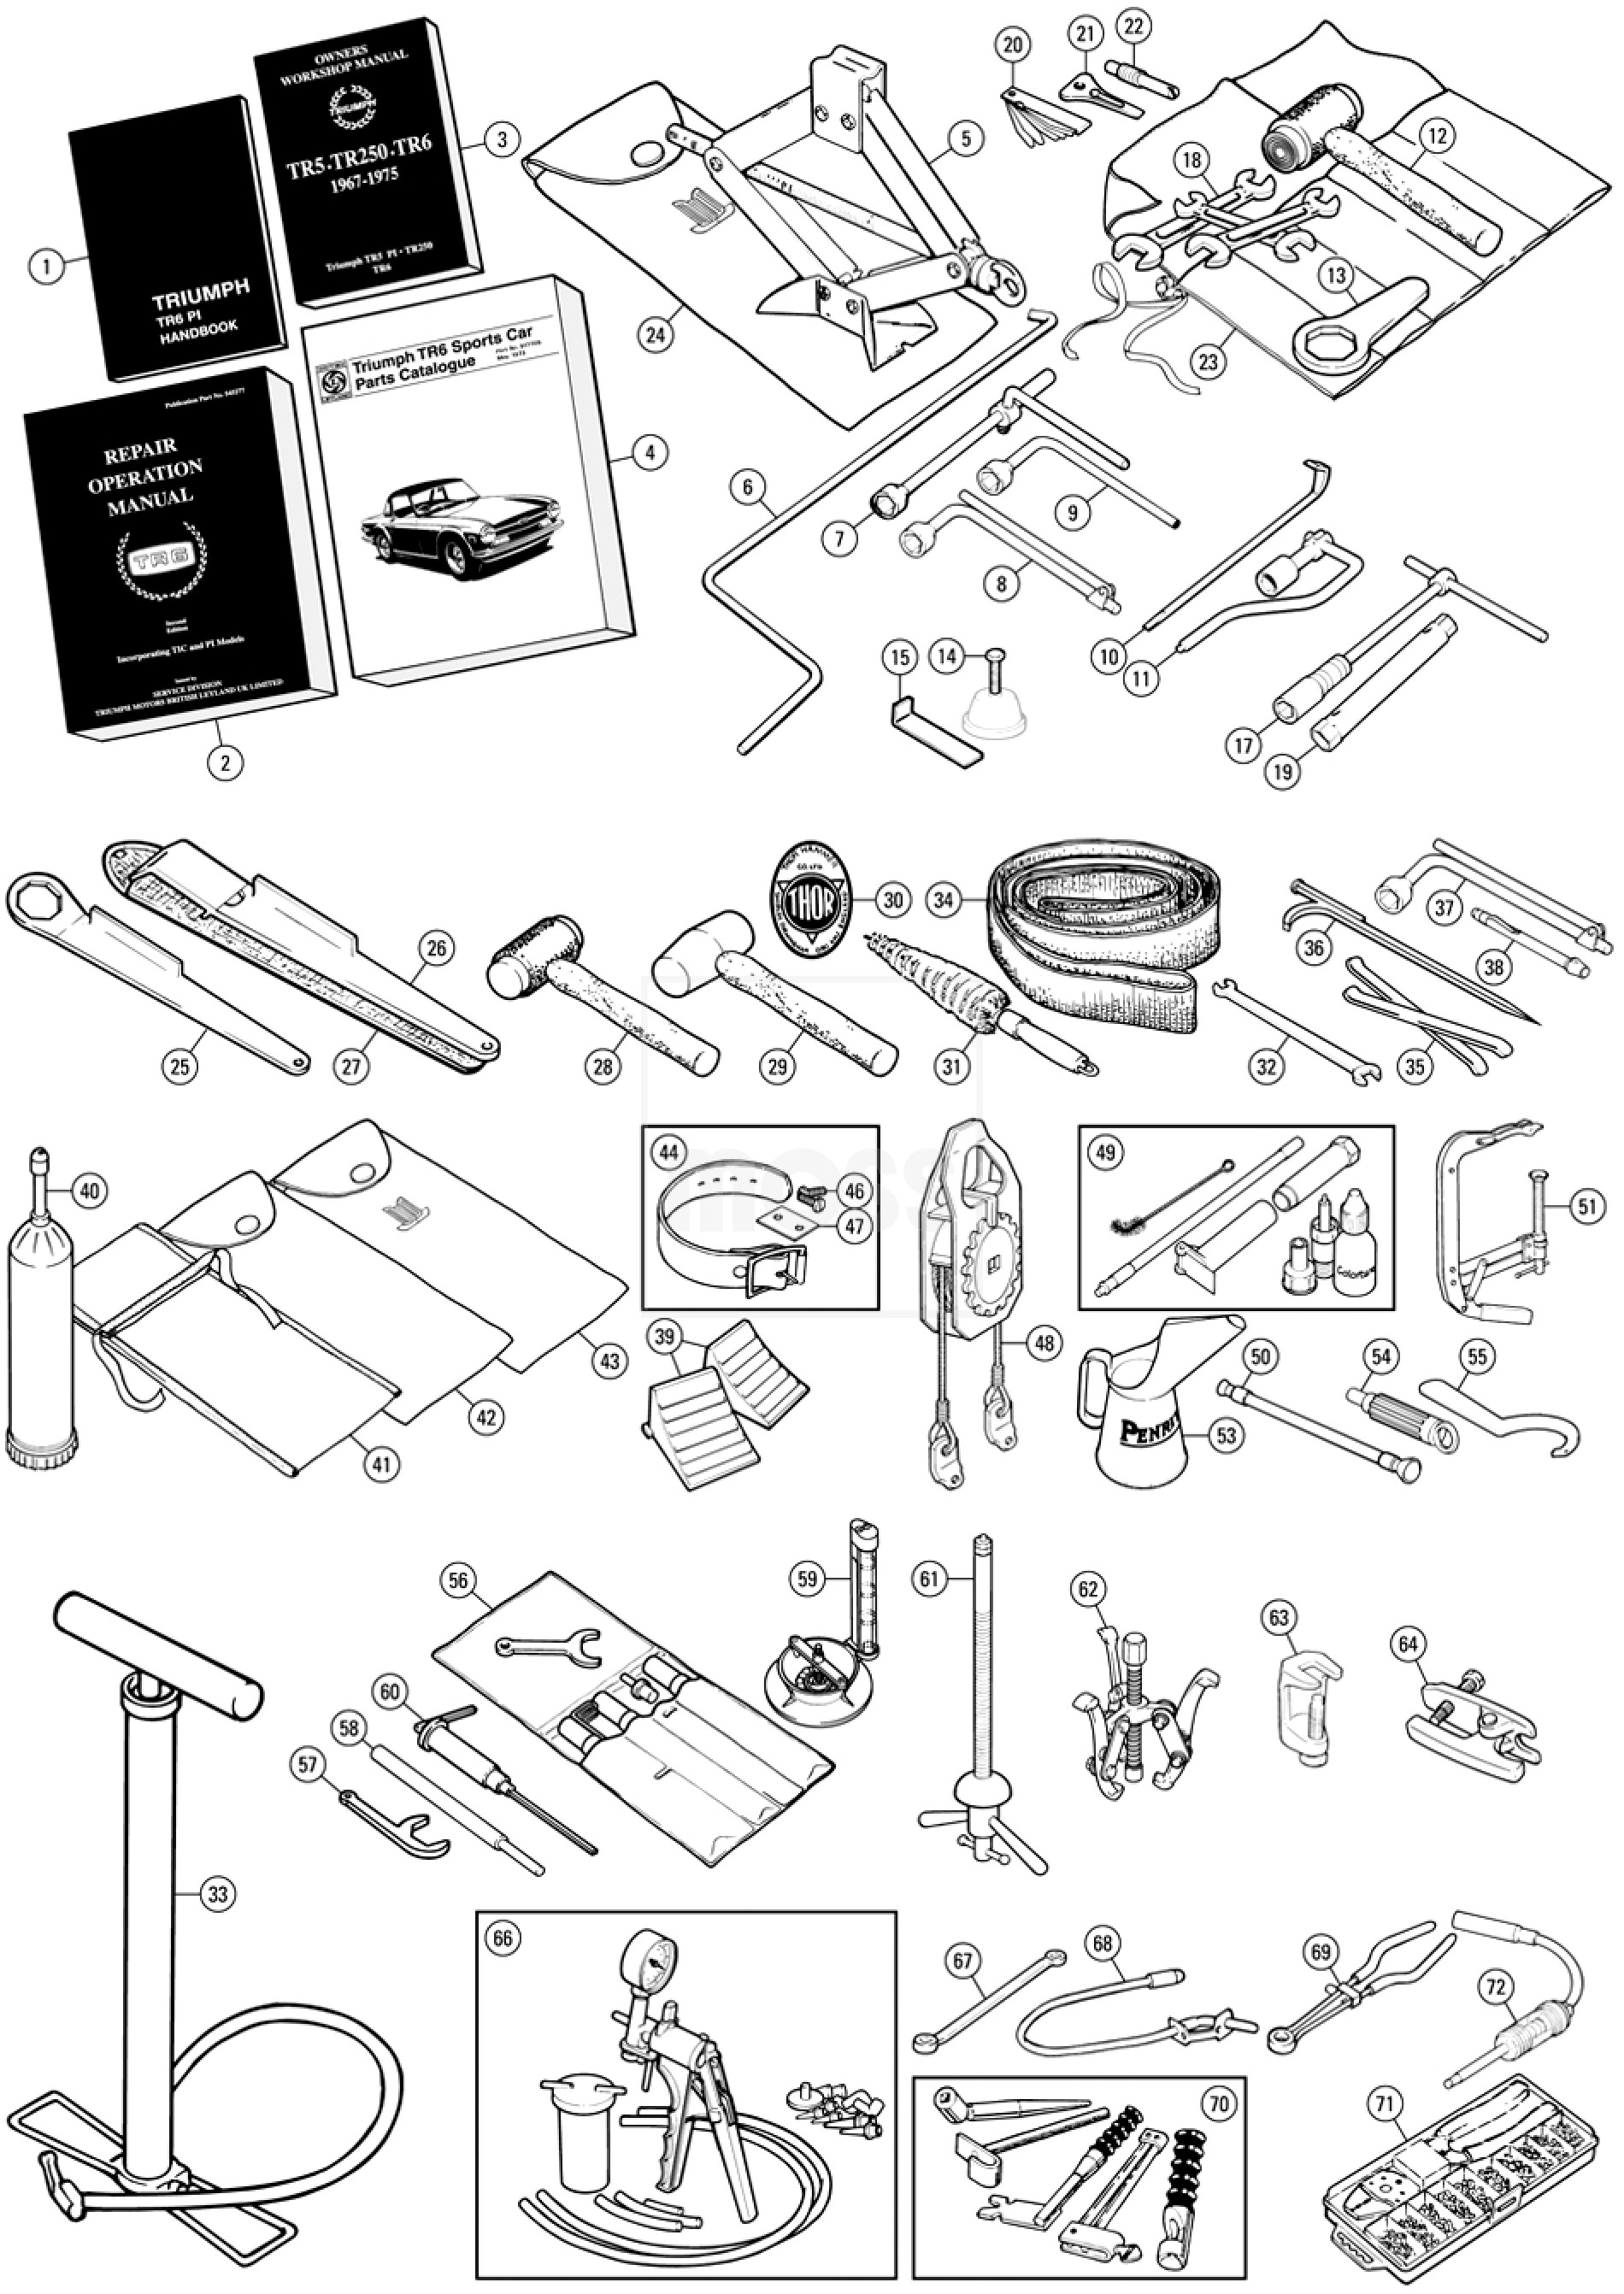 1972 triumph bonneville wiring diagram 2002 ford taurus car radio stereo 1974 tr6 imageresizertool com